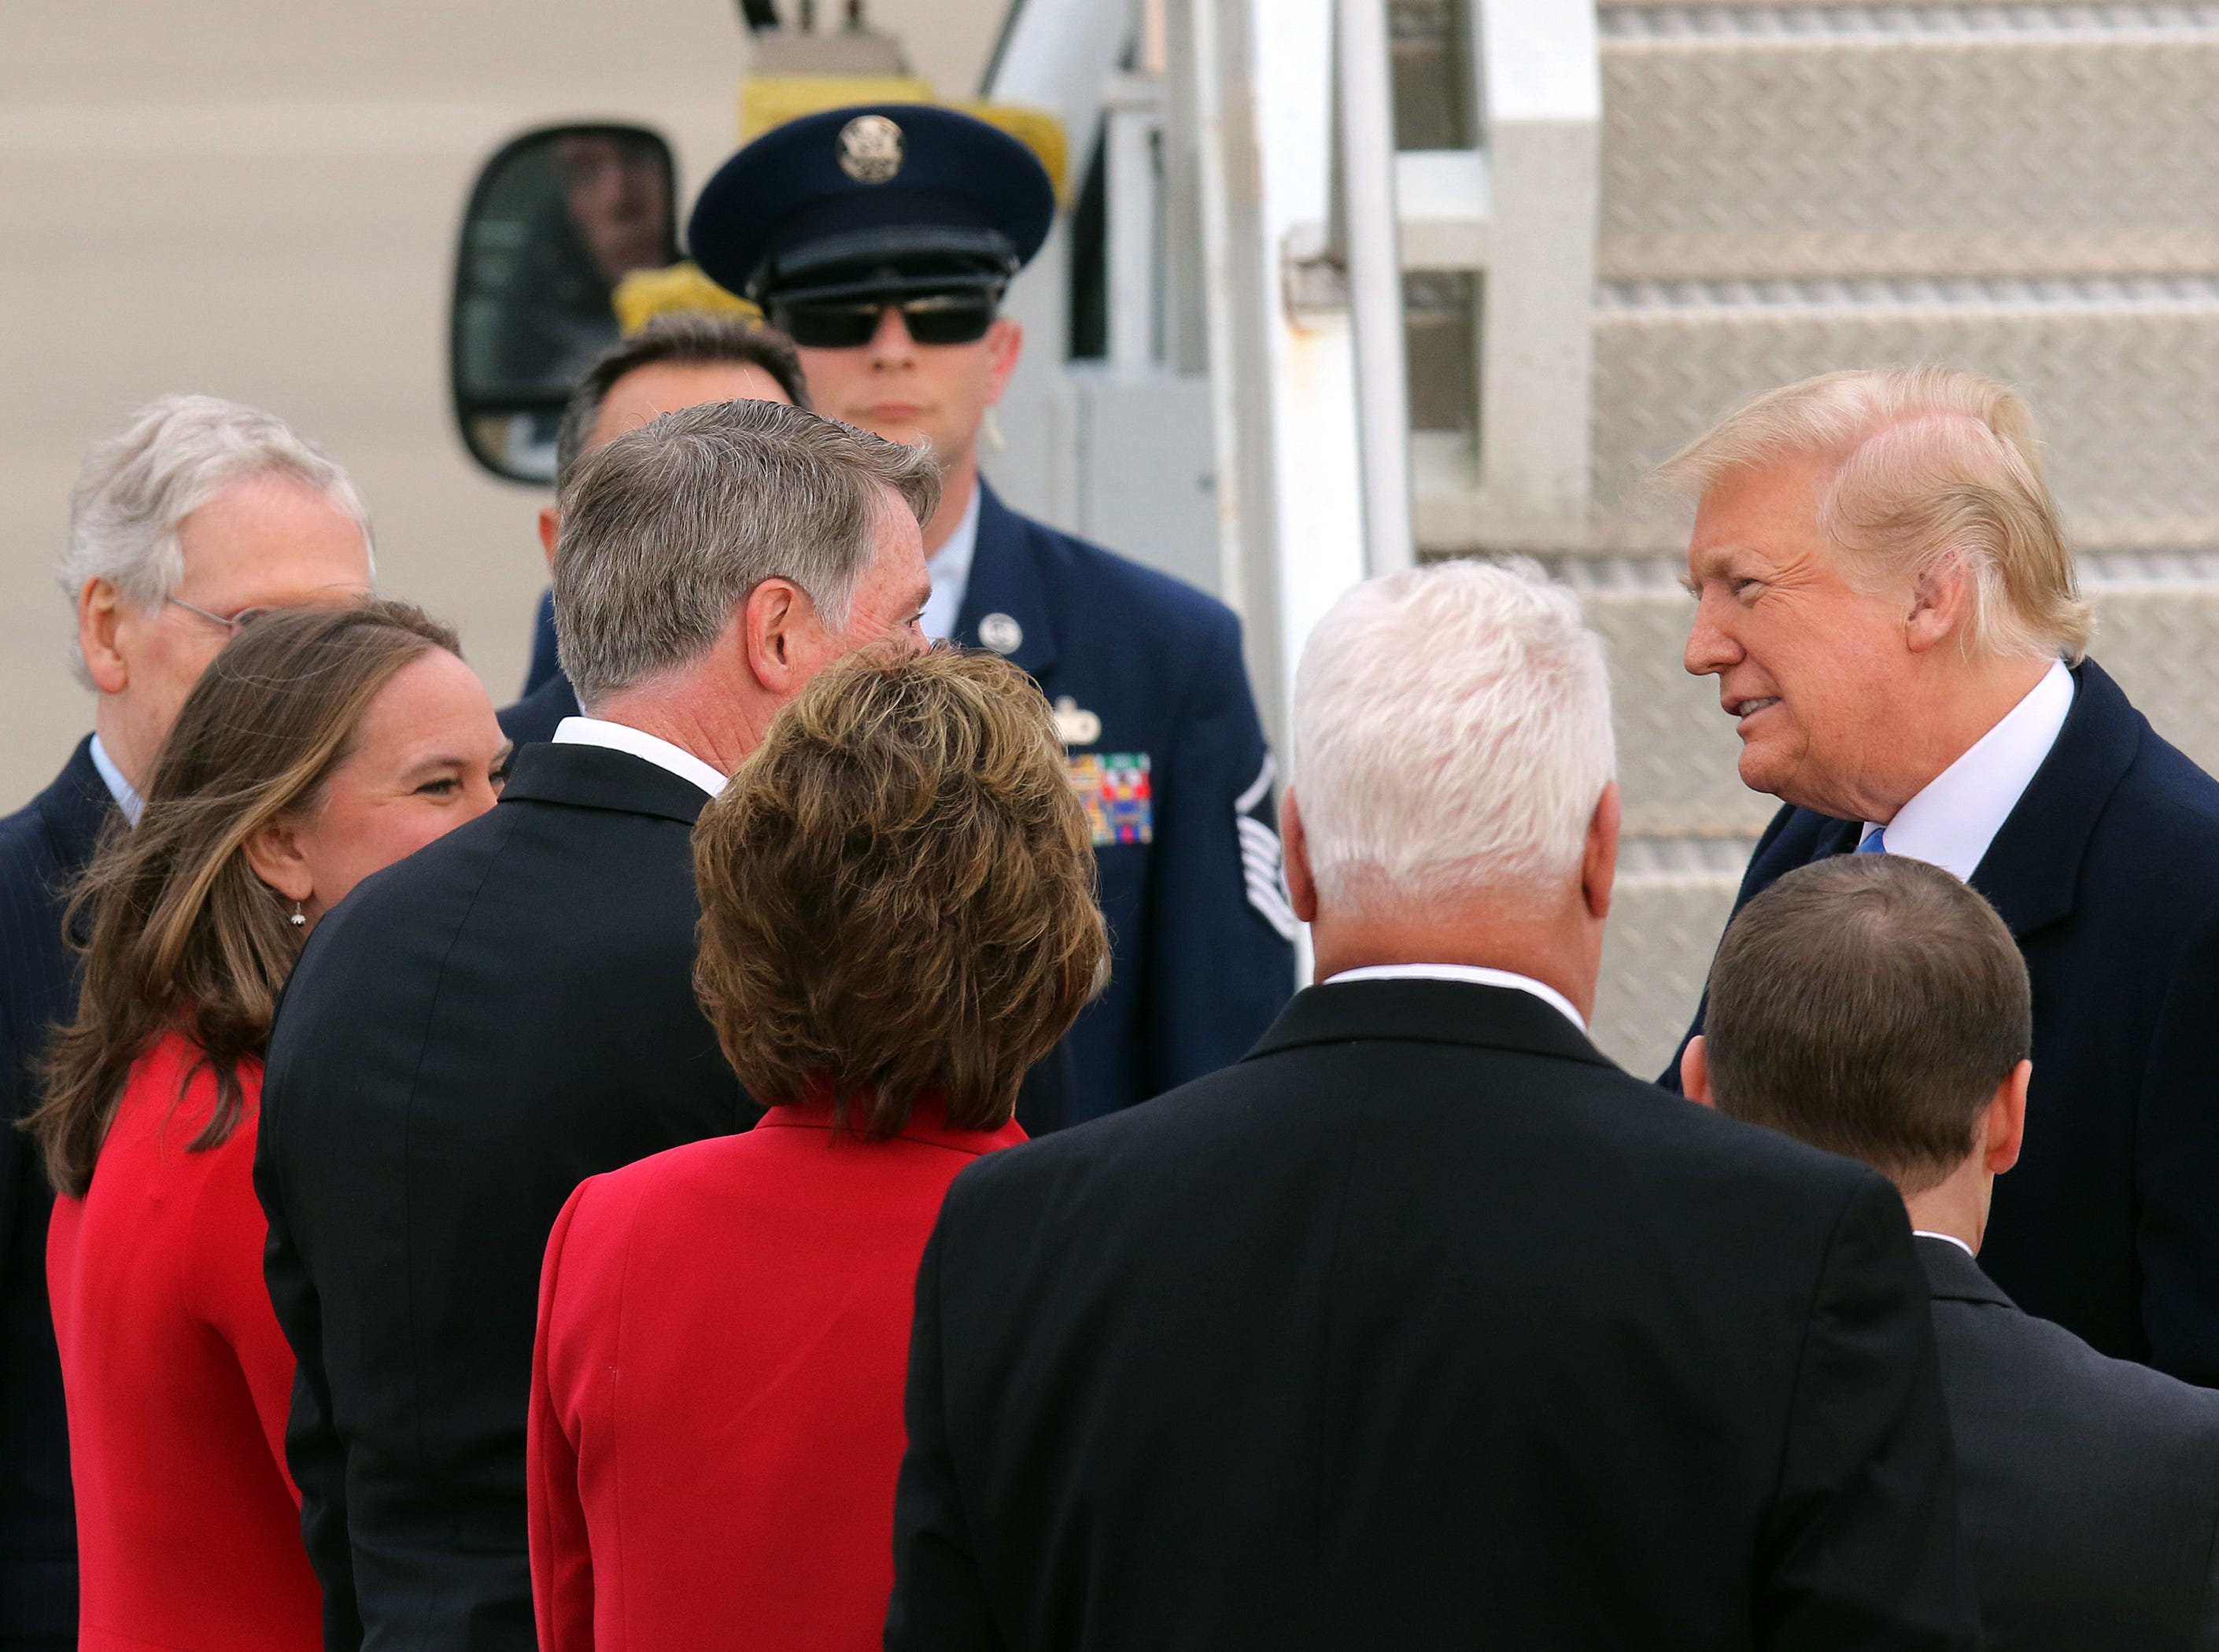 President Trump, right, greets dignitaries near Air Force One after arriving at Bluegrass Airport in Lexington, Oct. 13, 2018.